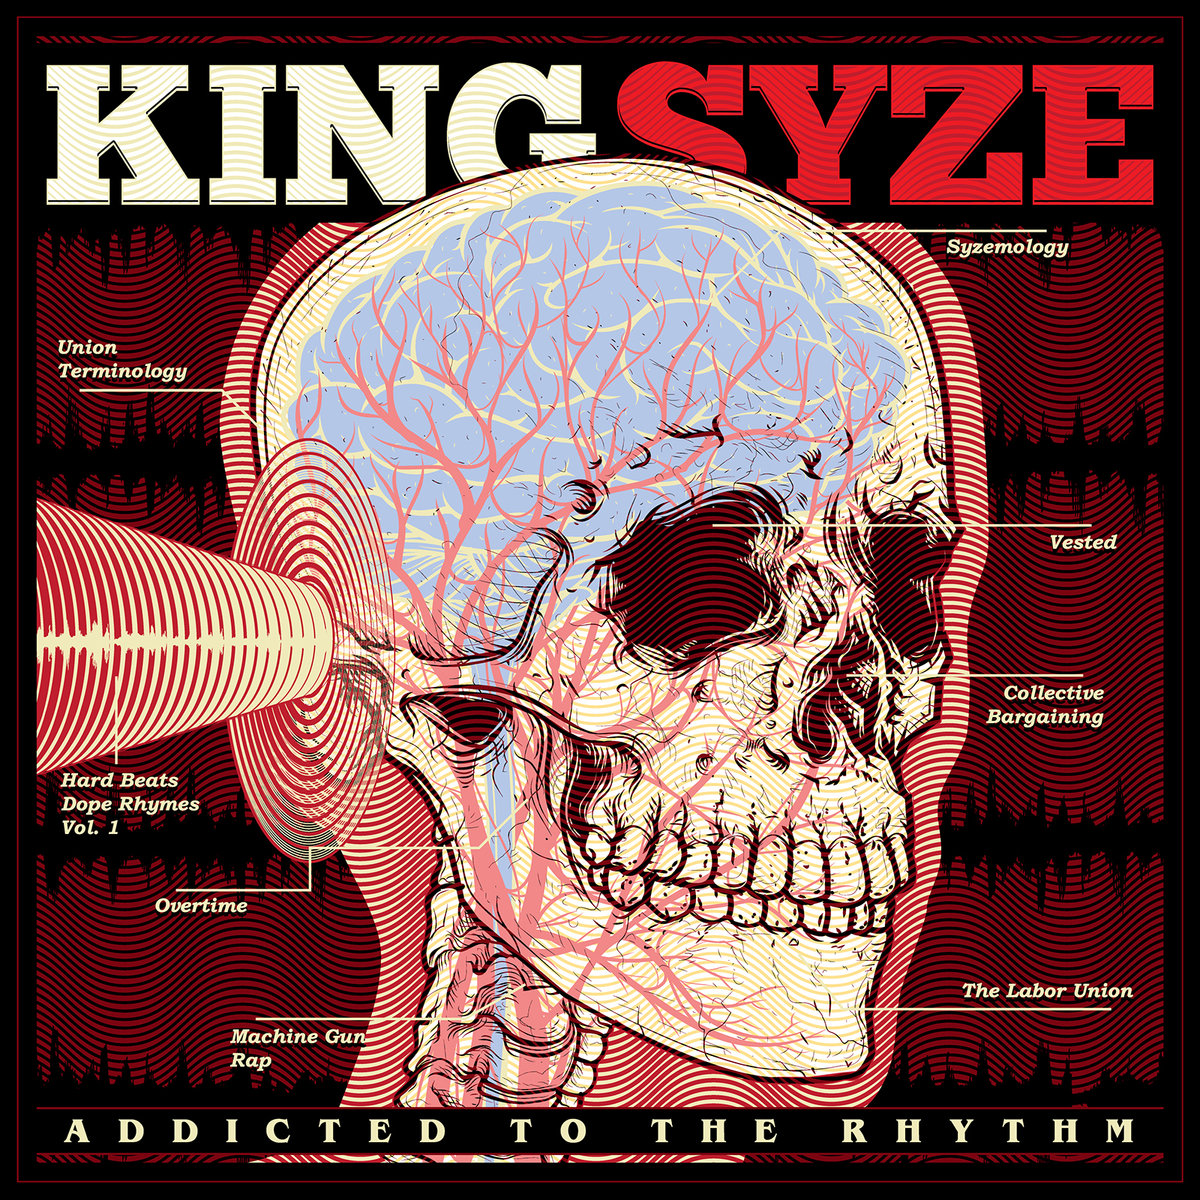 Addicted_to_the_rhythm_king_syze